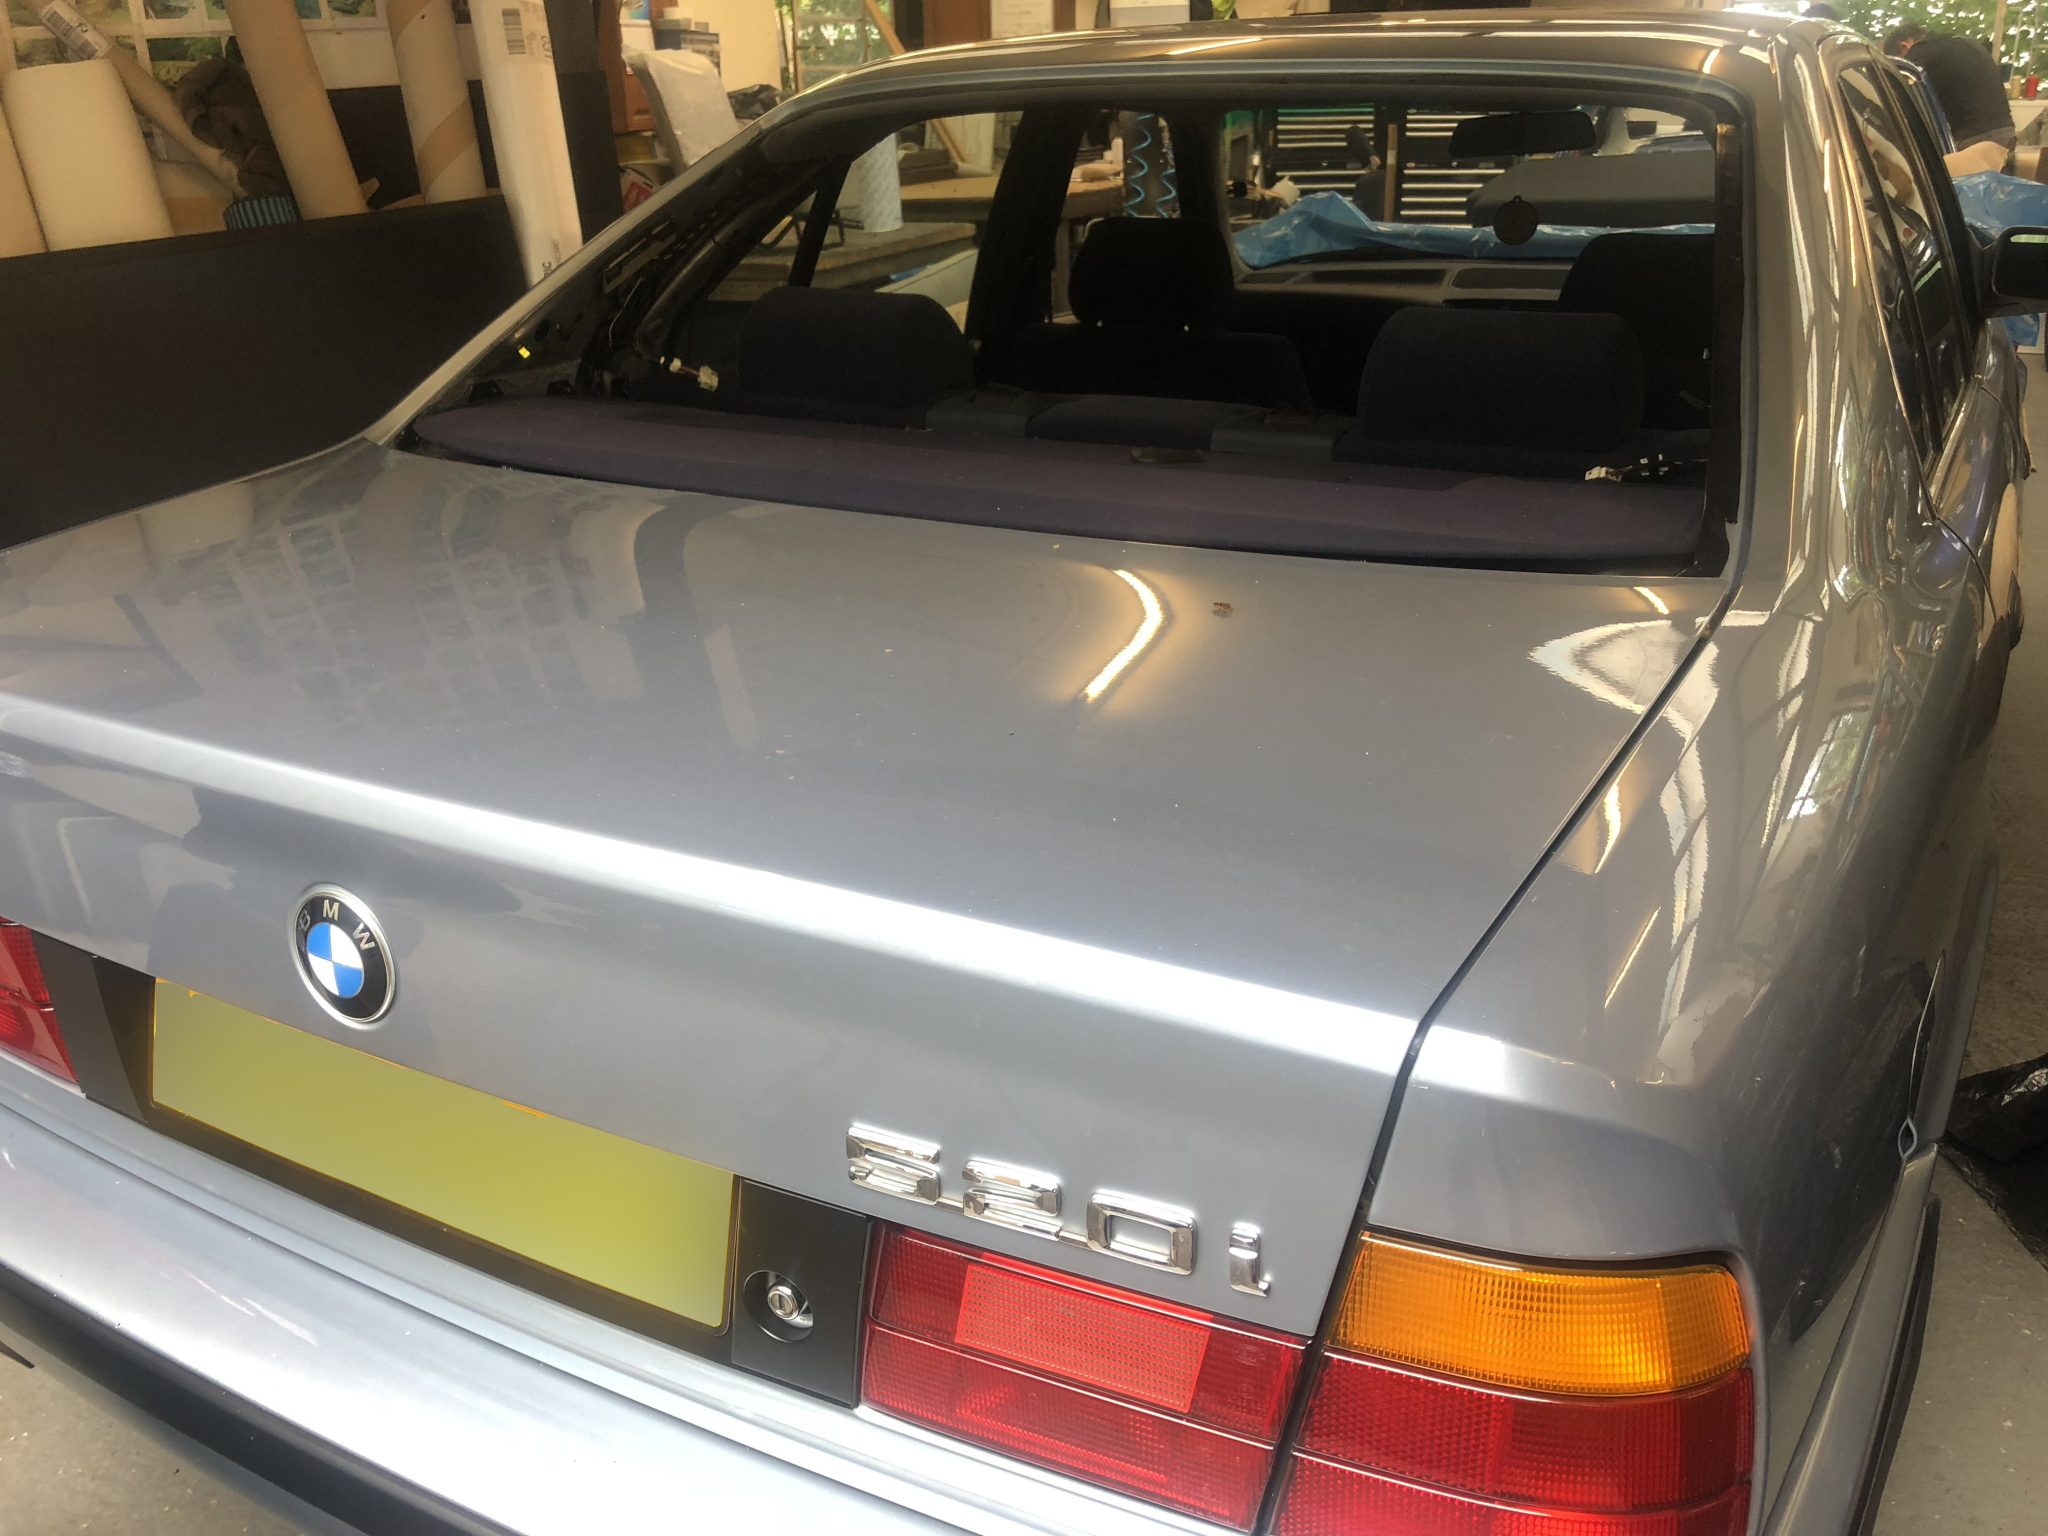 BMW 5 Series Rear Window Remove and Refit